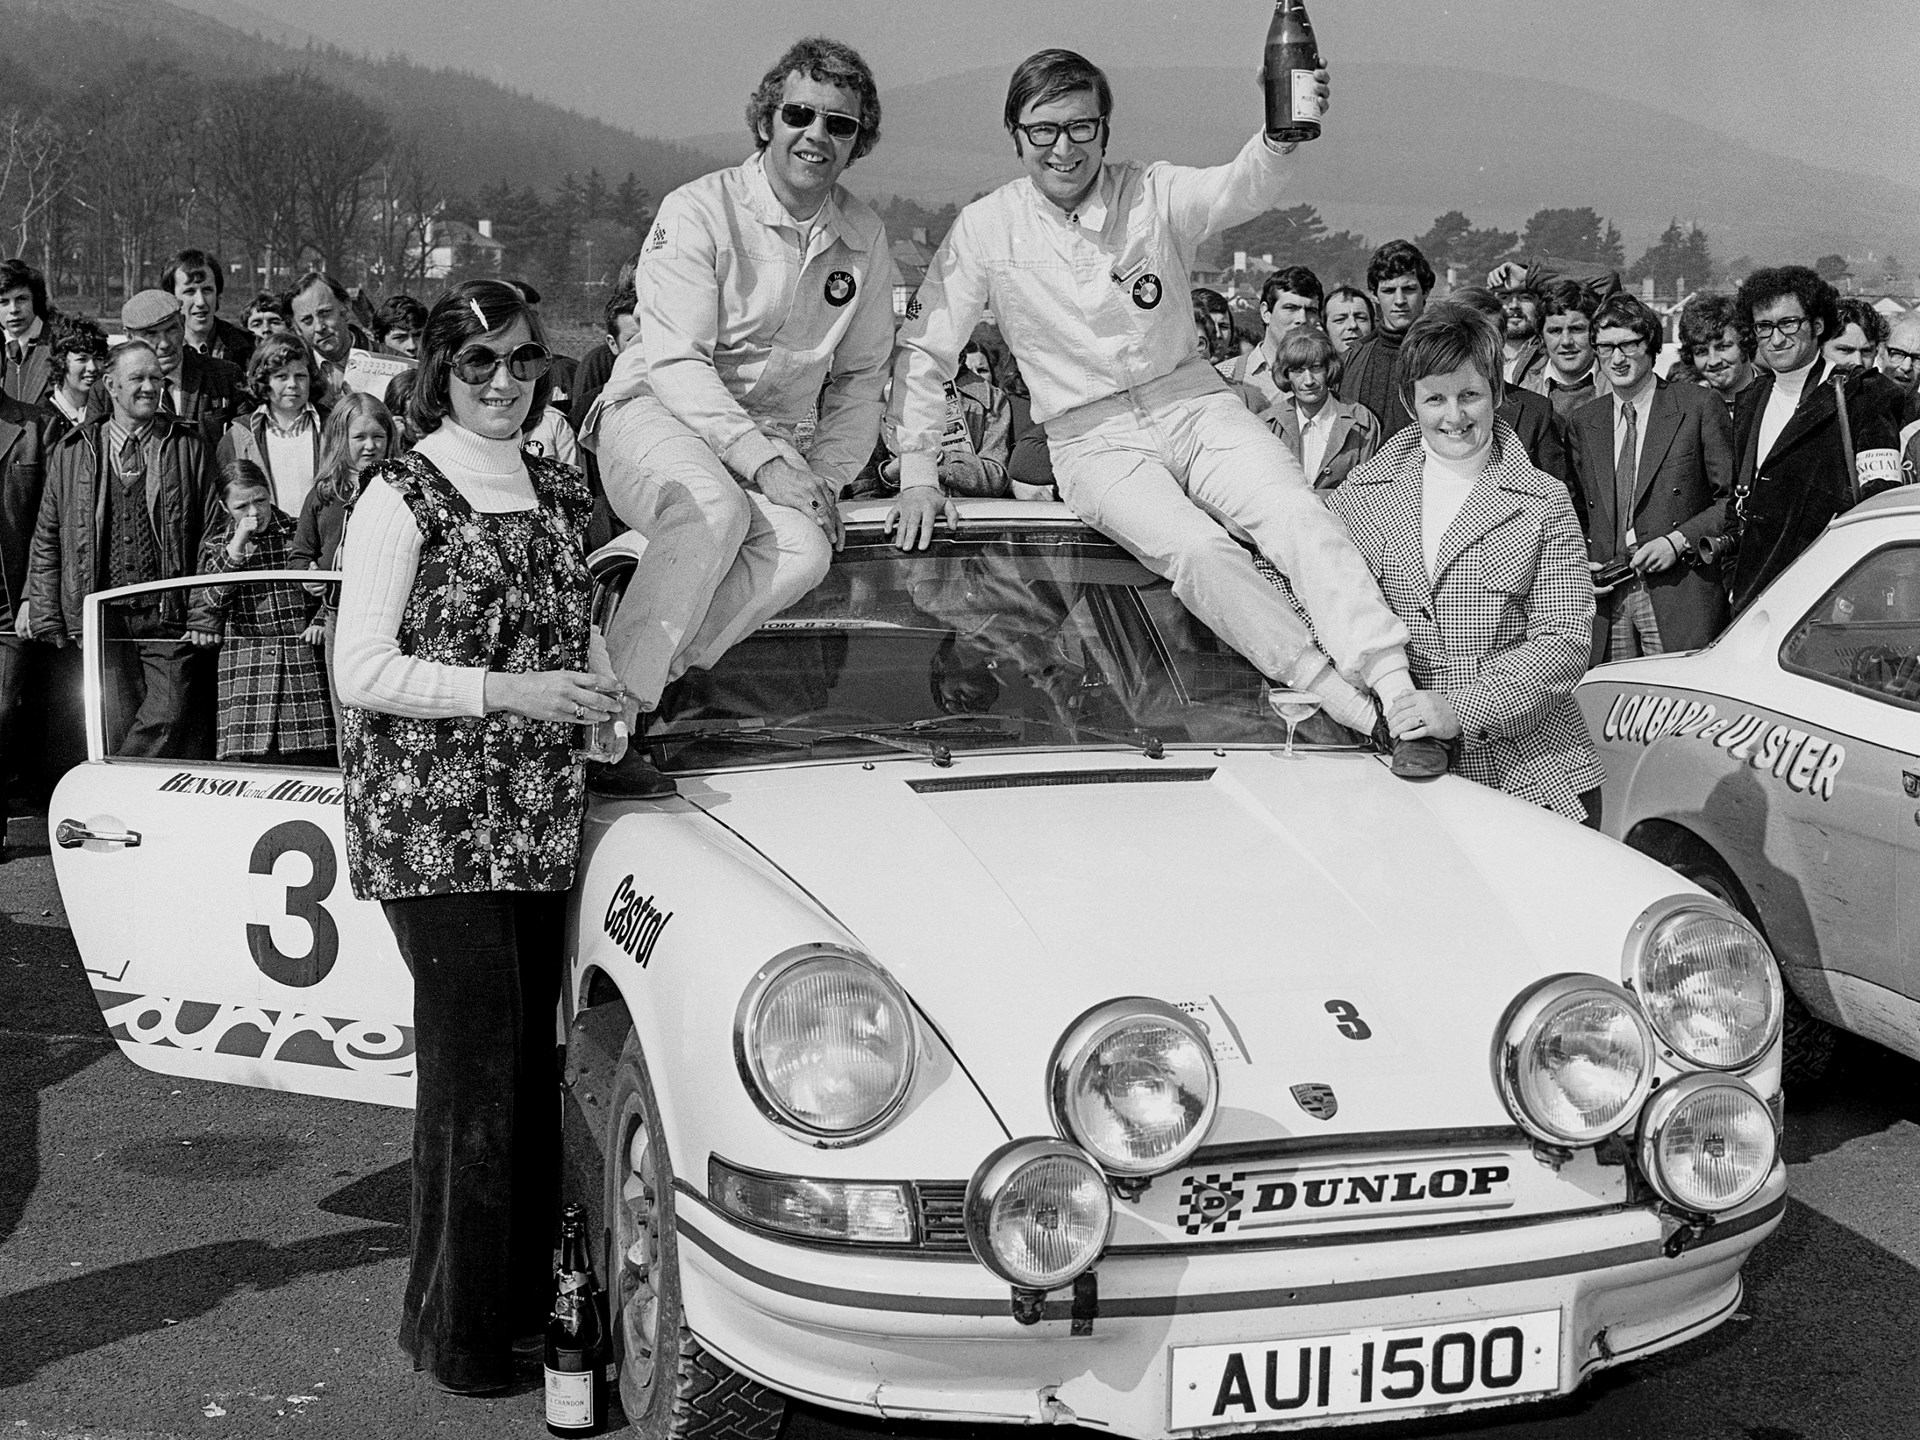 Cathal Curly celebrating his victory at the 1974 Circuit of Ireland Rally.